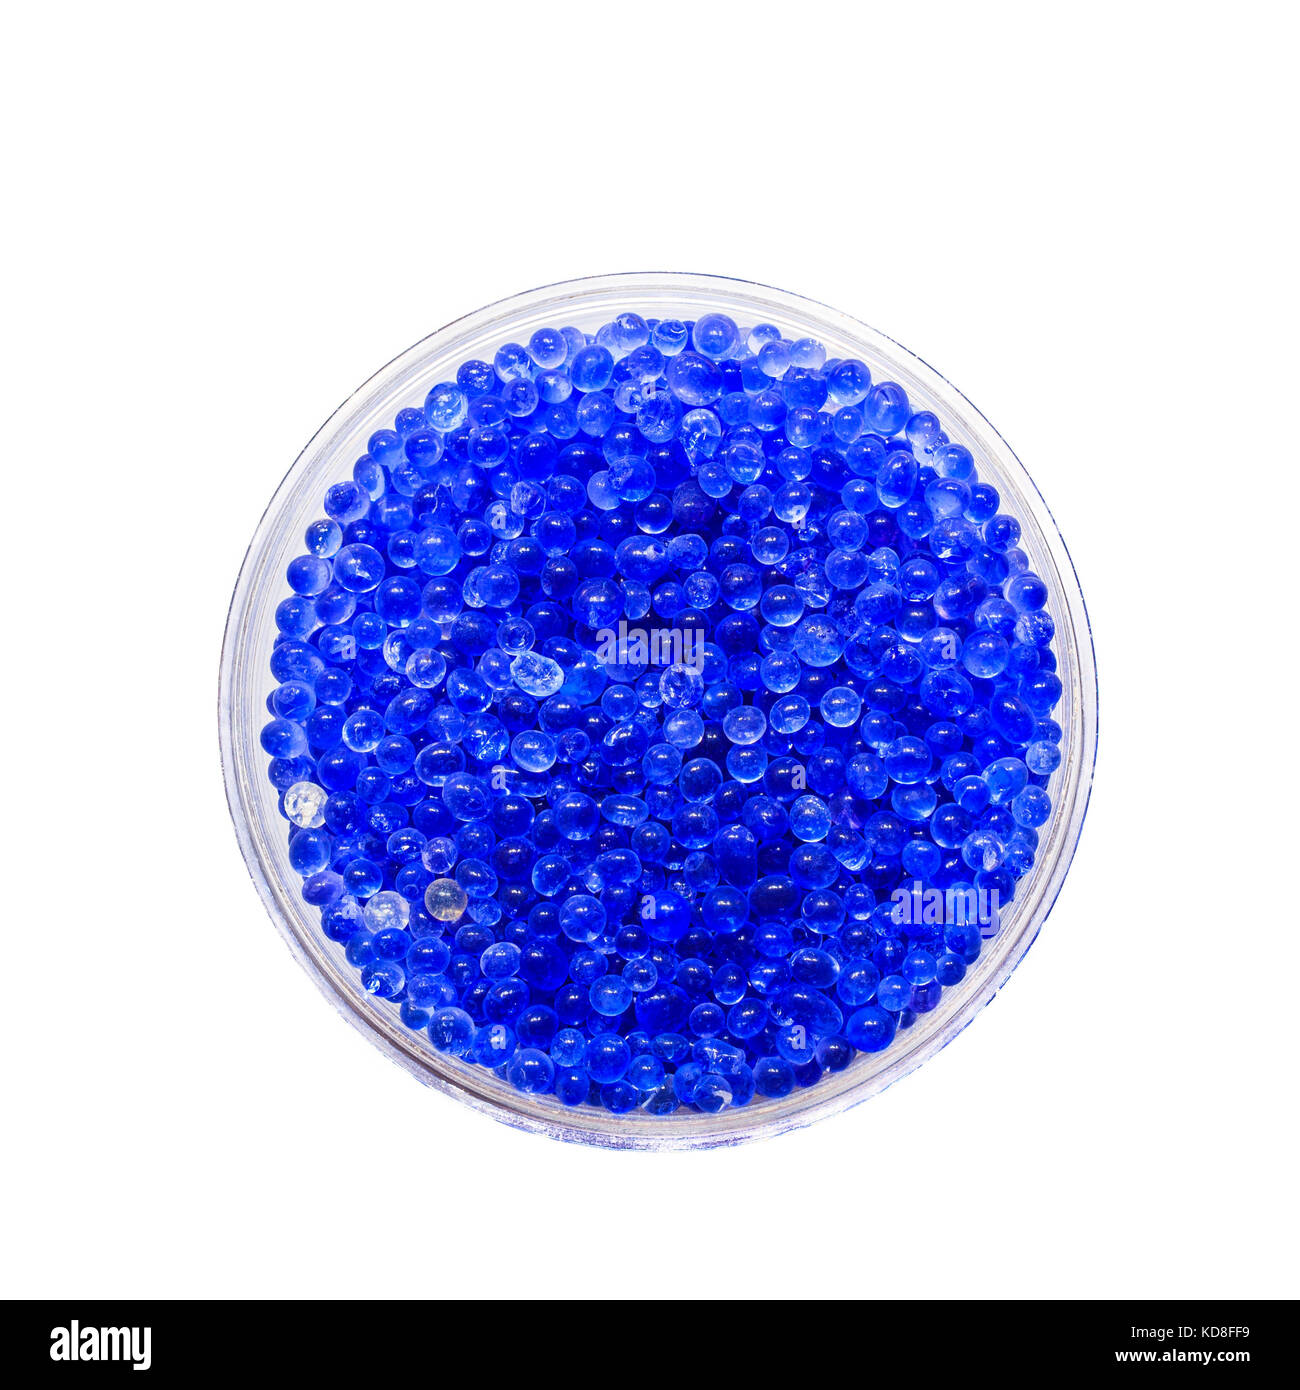 Silica Gel Packet Stock Photos Images Alamy Blue Gell On White Background Image